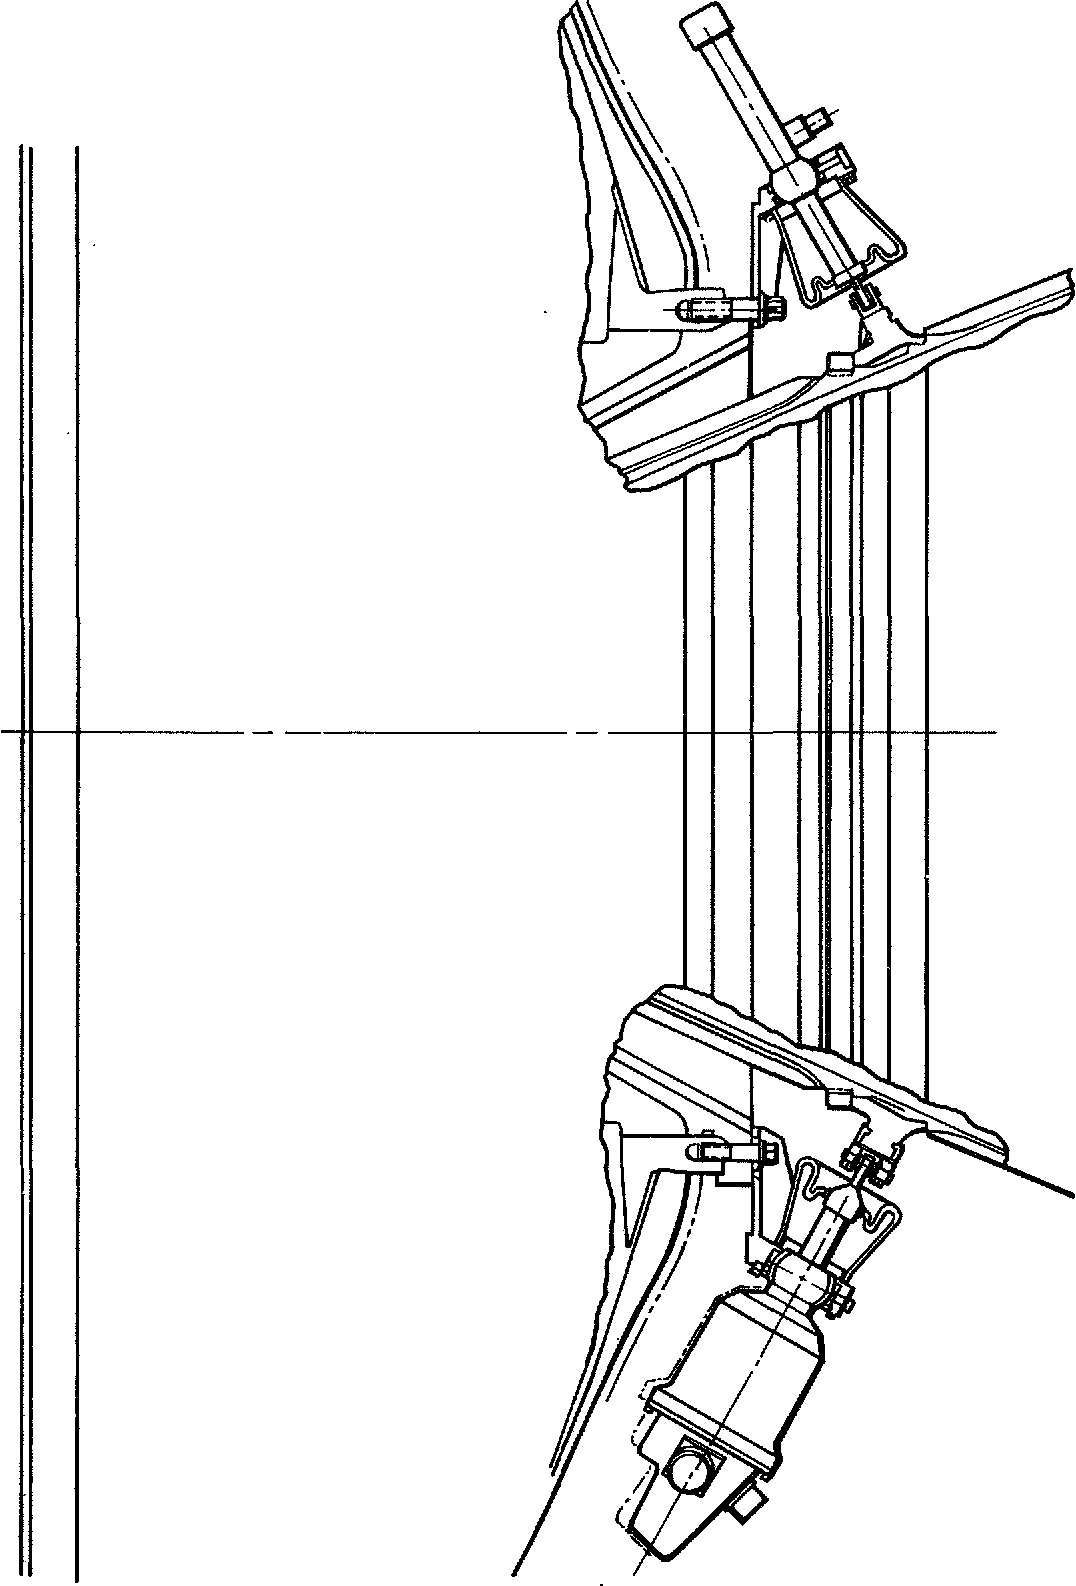 hight resolution of figure 2 actuator and potentiometer mounting